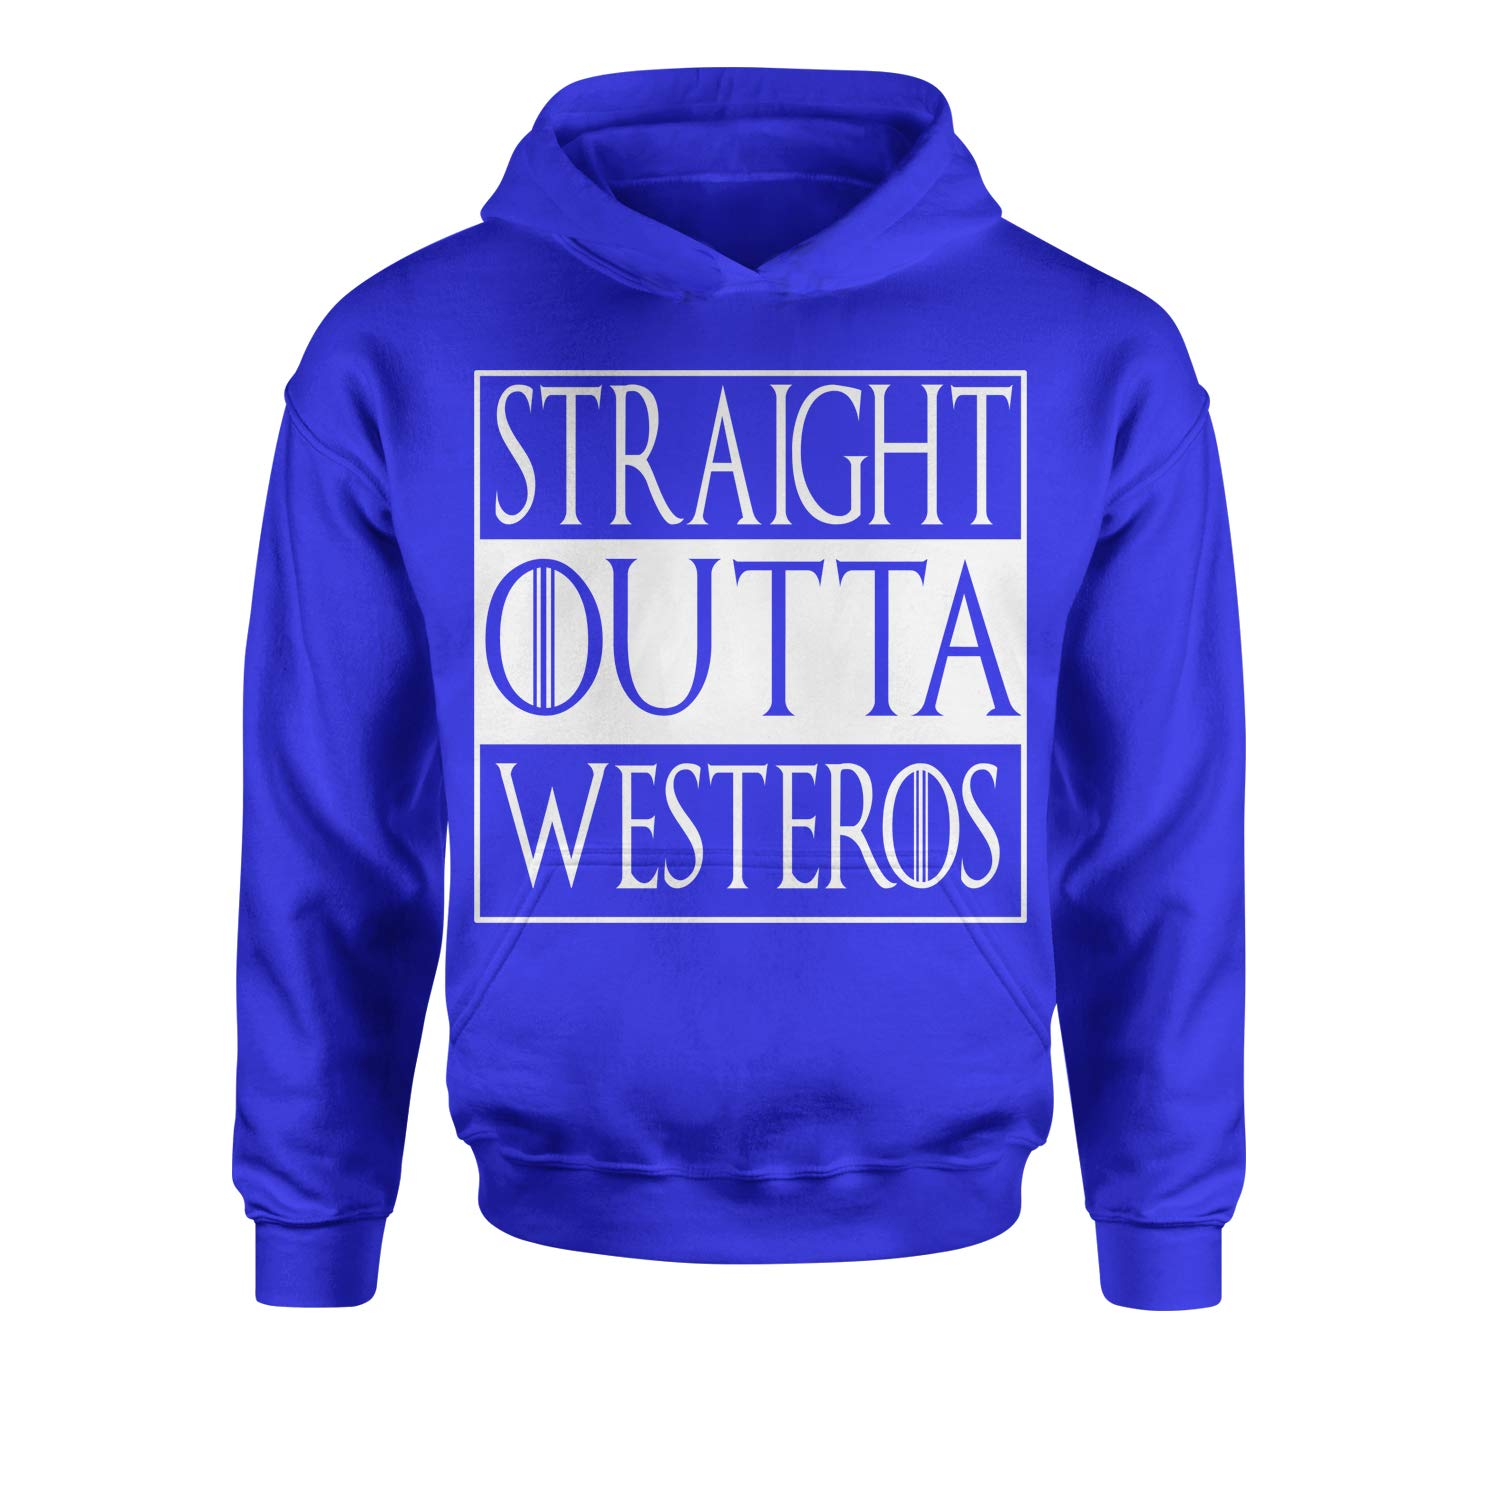 Expression Tees Straight Outta Westeros Youth-Sized Hoodie